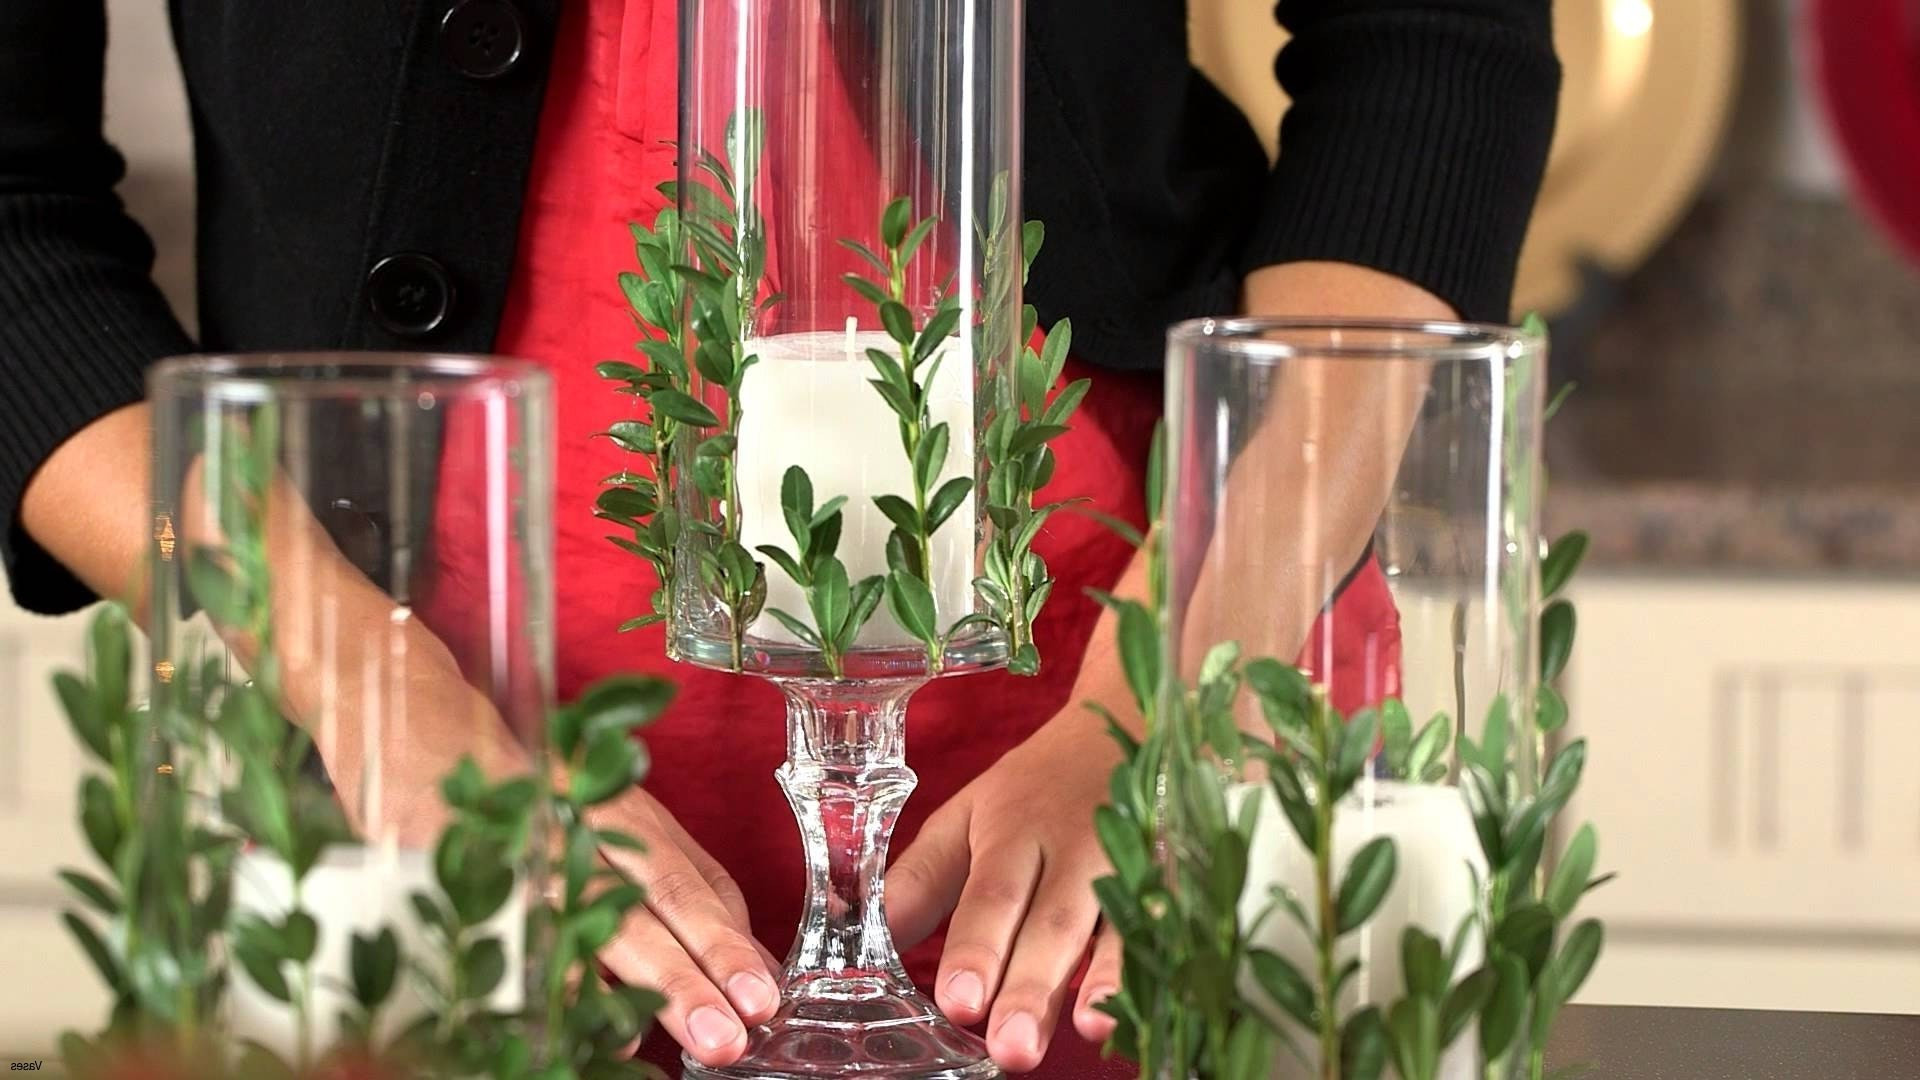 crystal flower vases wholesale of decorative branches for weddings awesome tall vase centerpiece ideas for decorative branches for weddings awesome 18 new wedding centerpiece decoration ideas of decorative branches for weddings